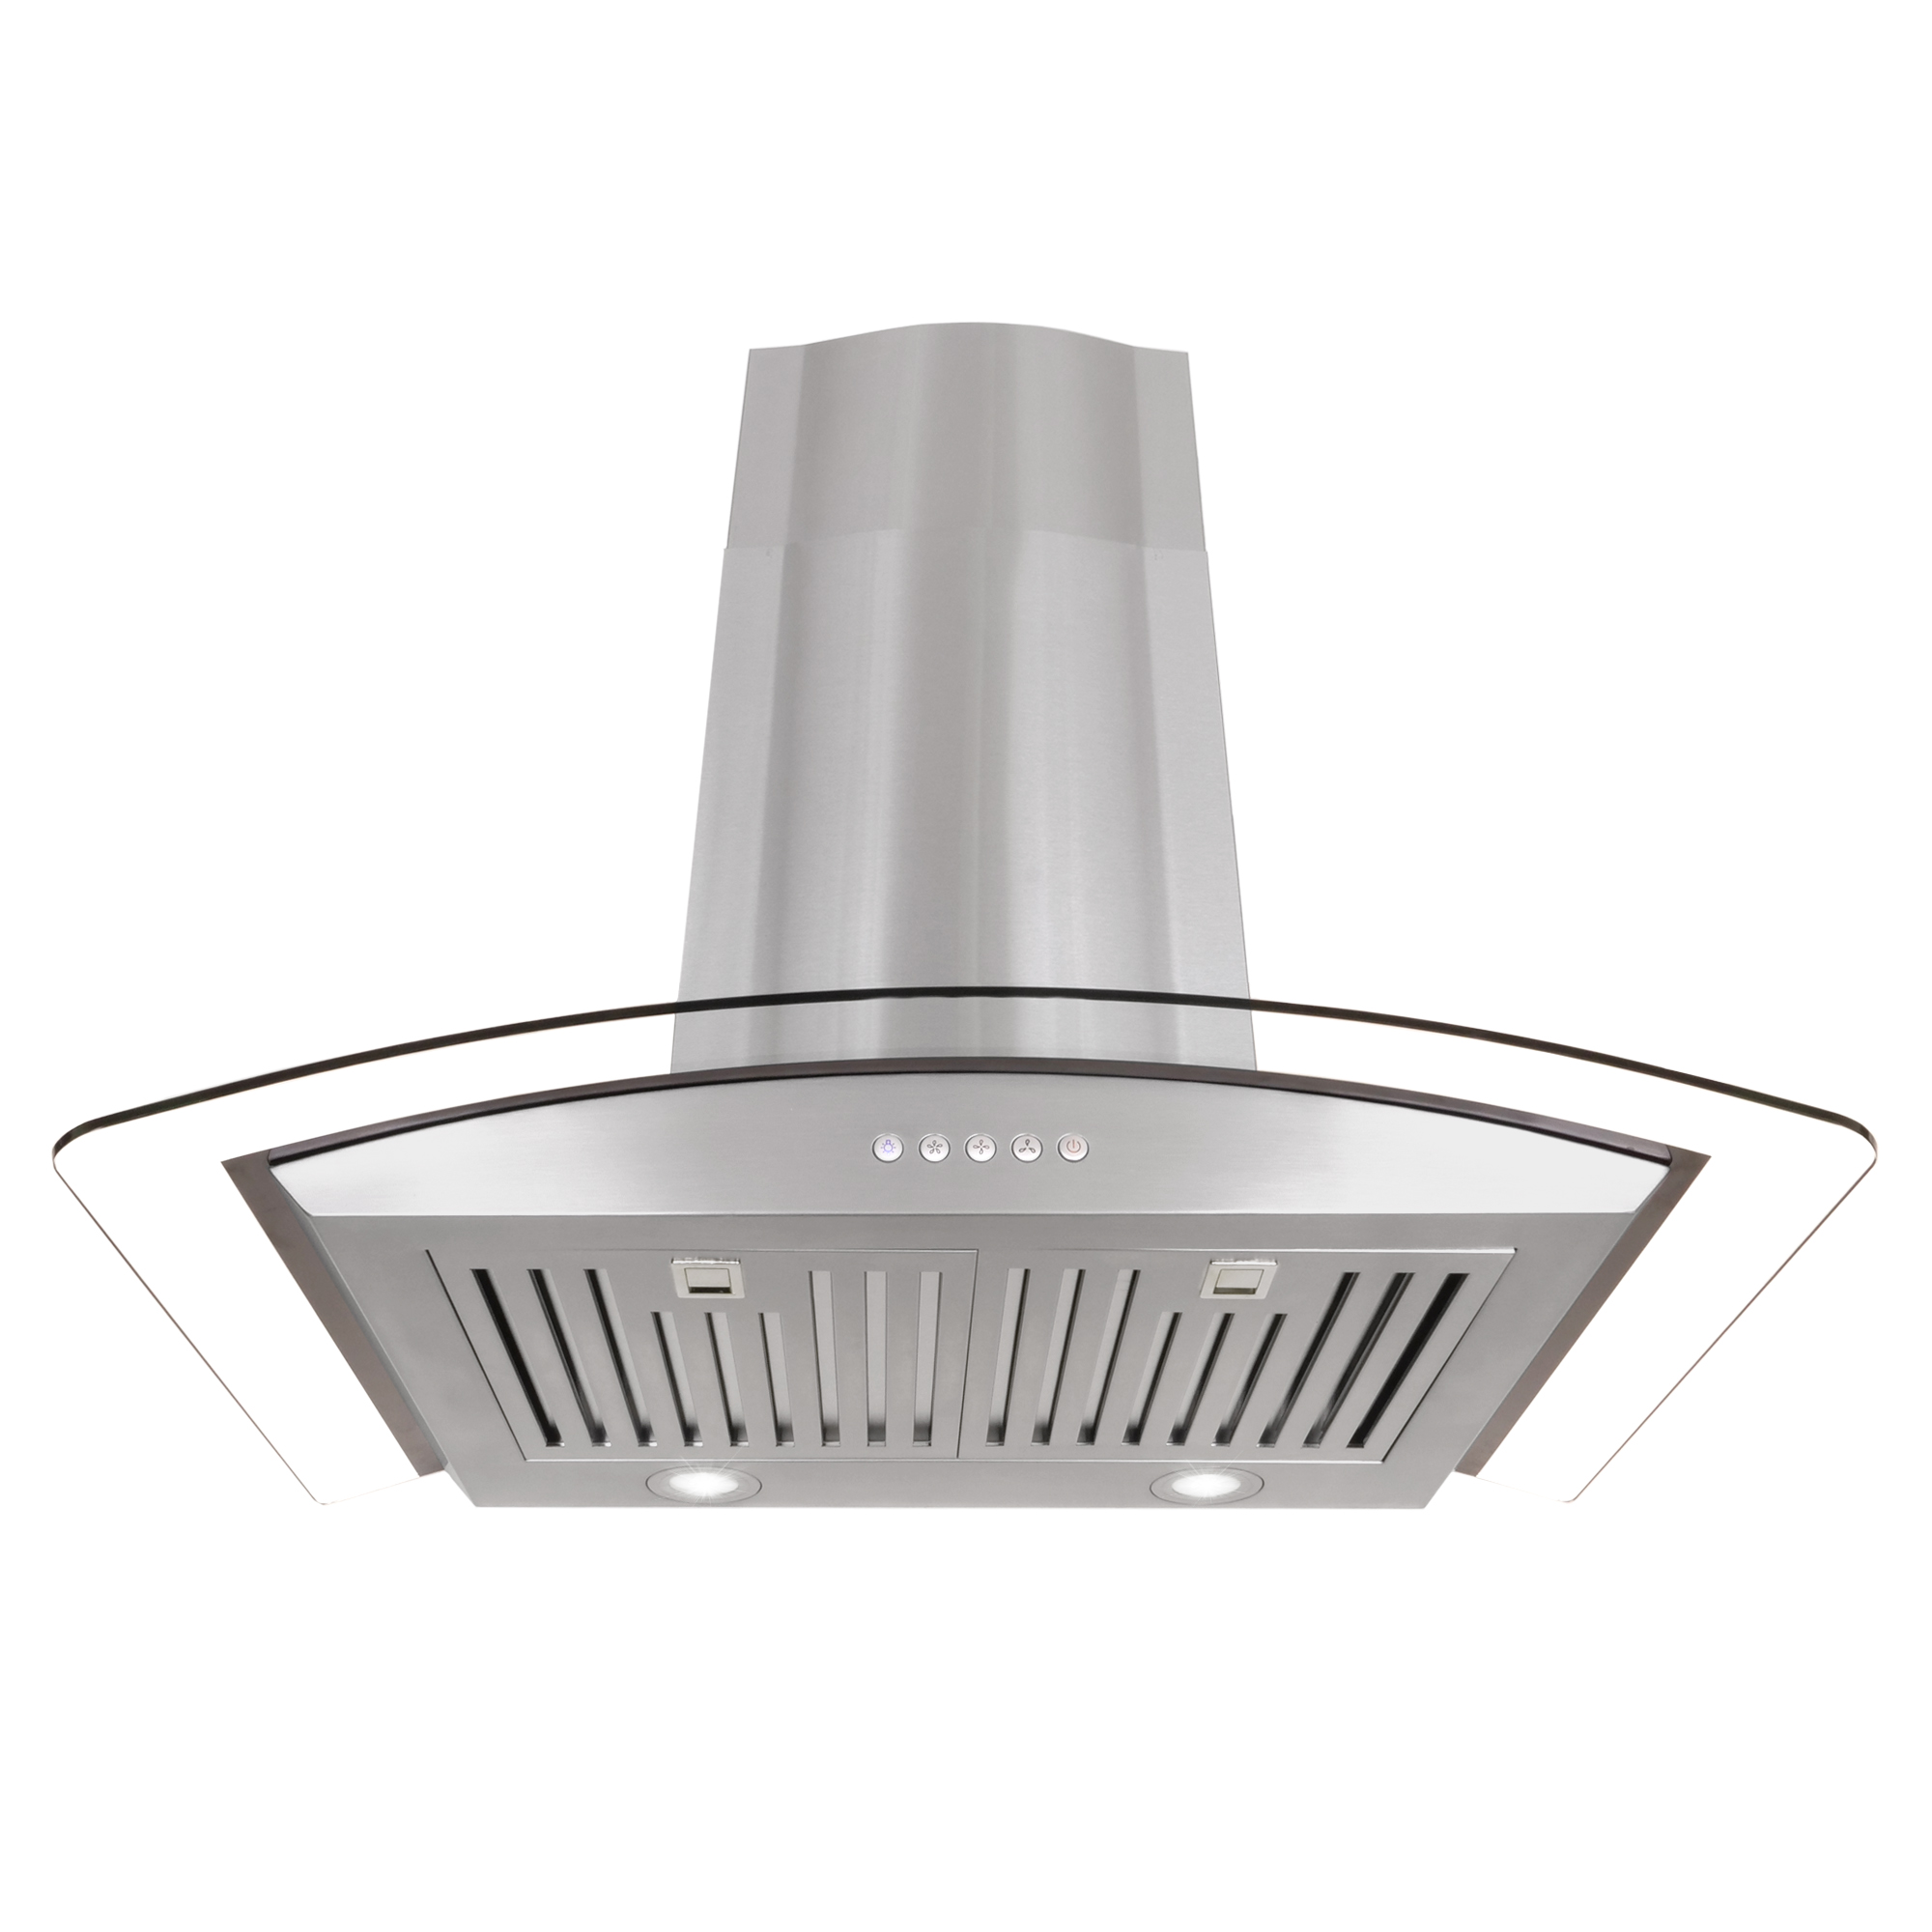 30 In Wall Mount Range Hood Cosmo Appliances Cos 668a750